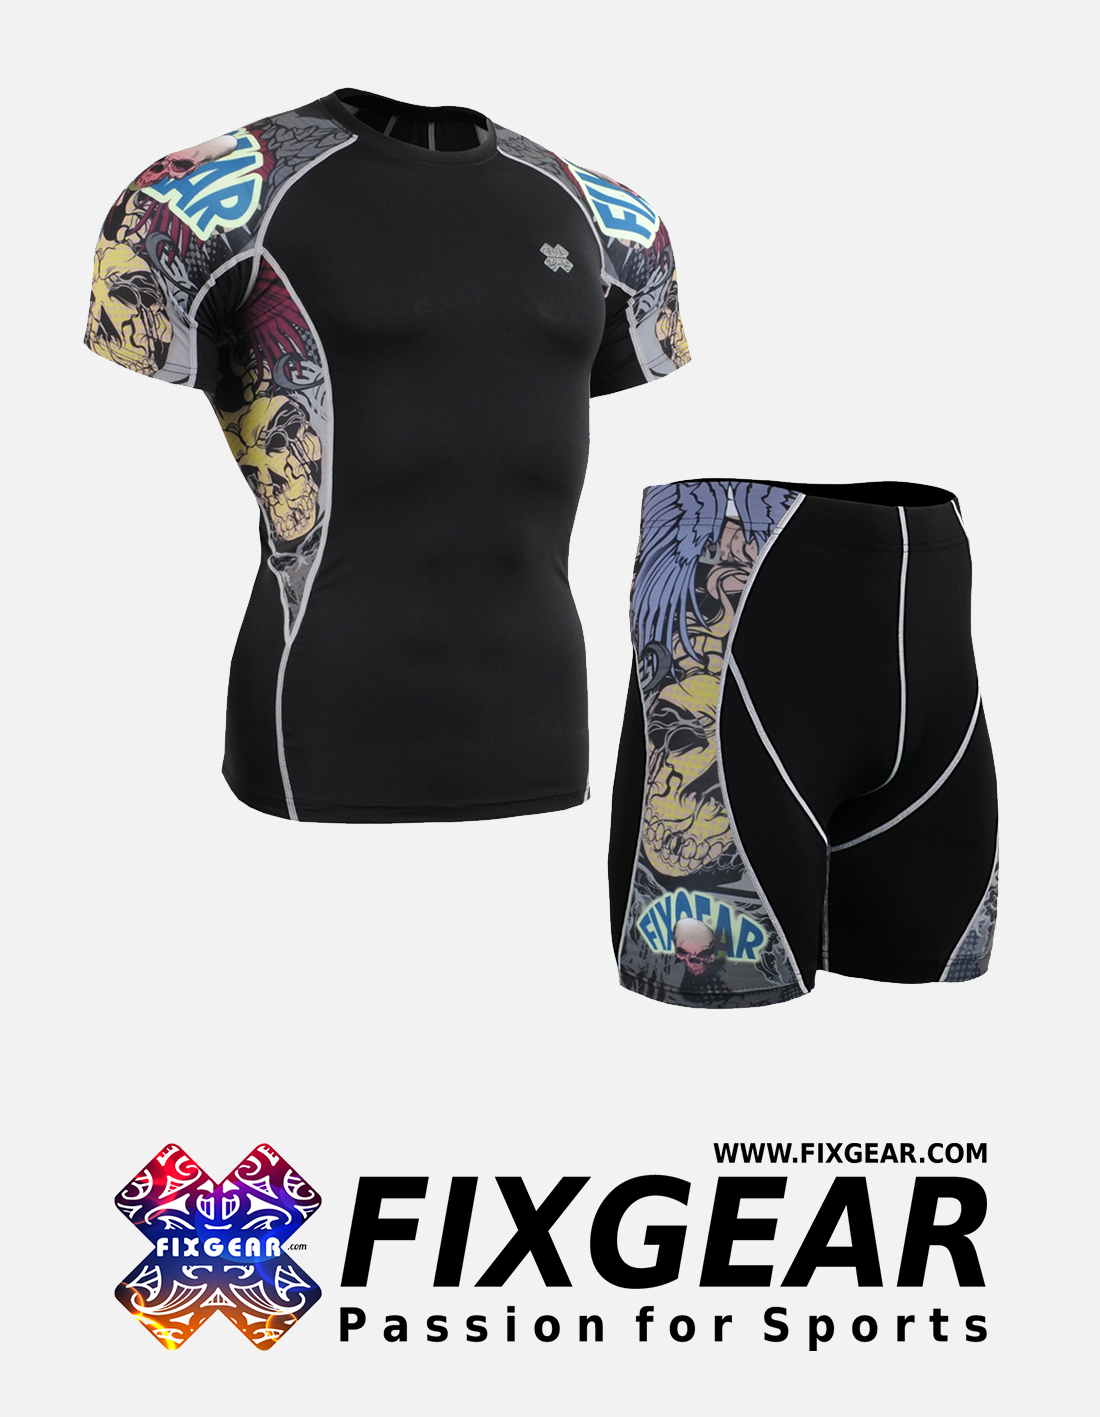 FIXGEAR C2S-P2S-B44 Set Compression Base Layer Shirt & Compression Drawer Shorts